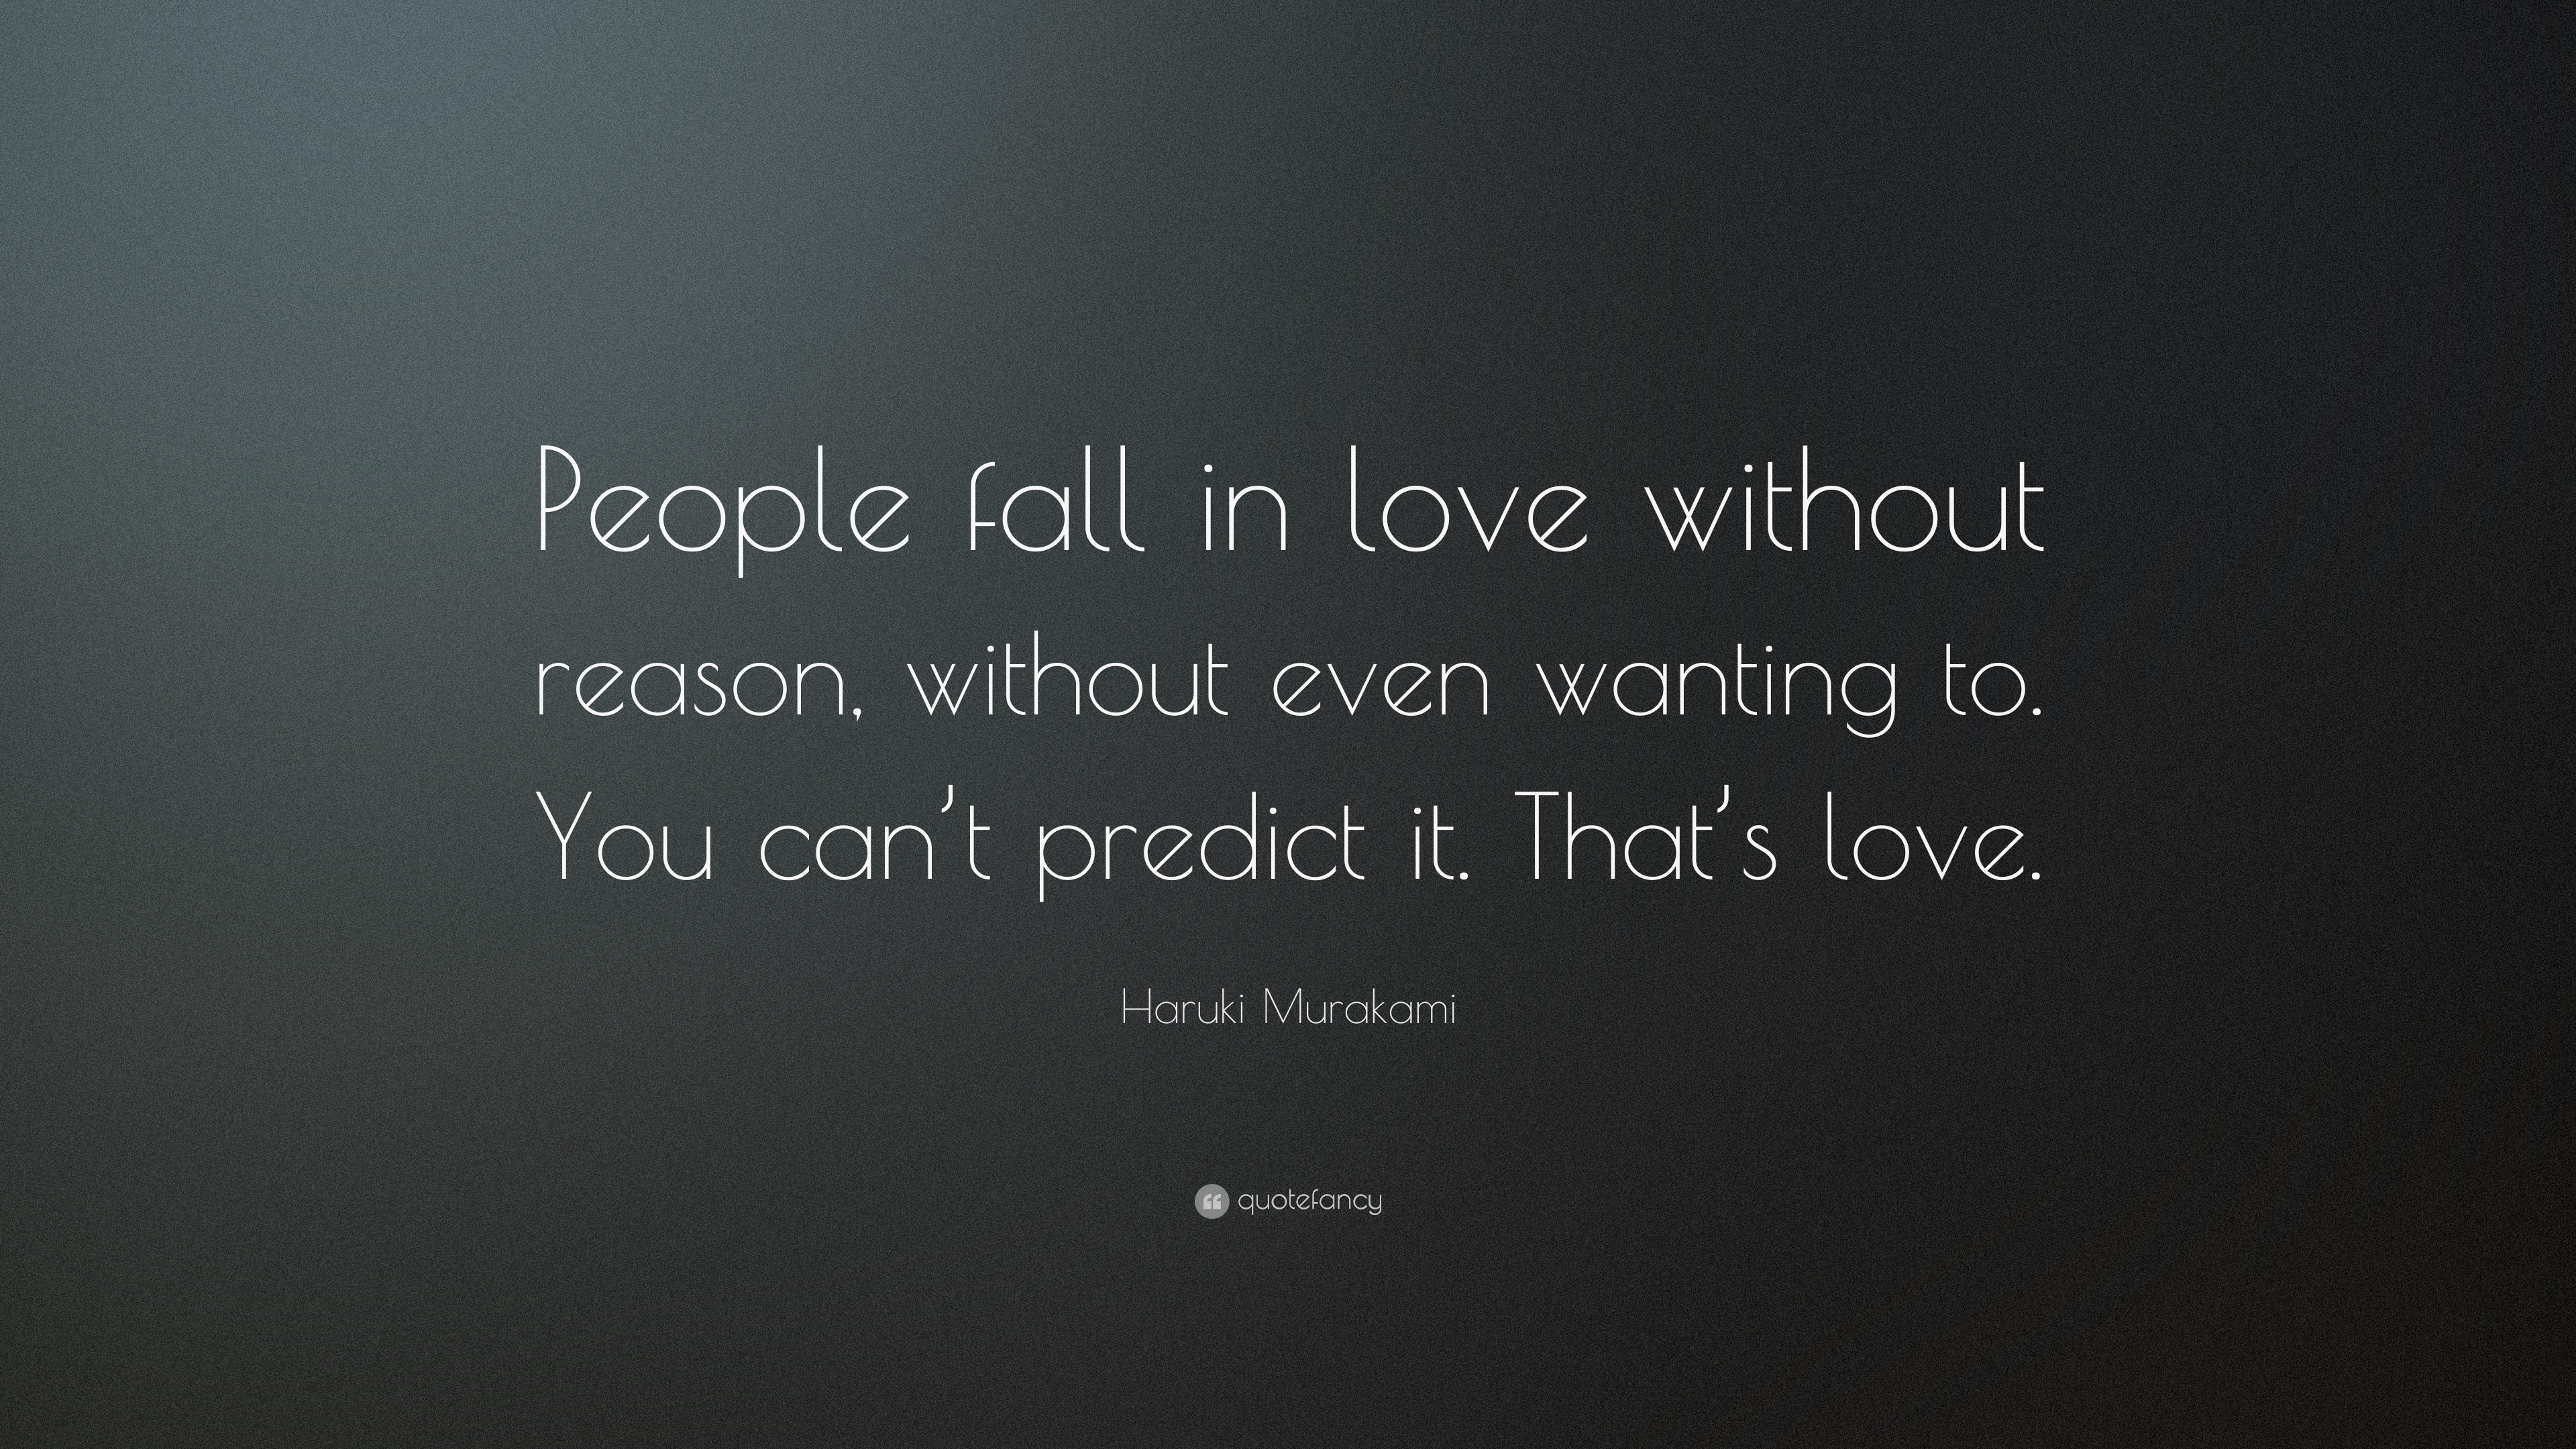 "Haruki Murakami Quote ""People fall in love without reason without even wanting to"